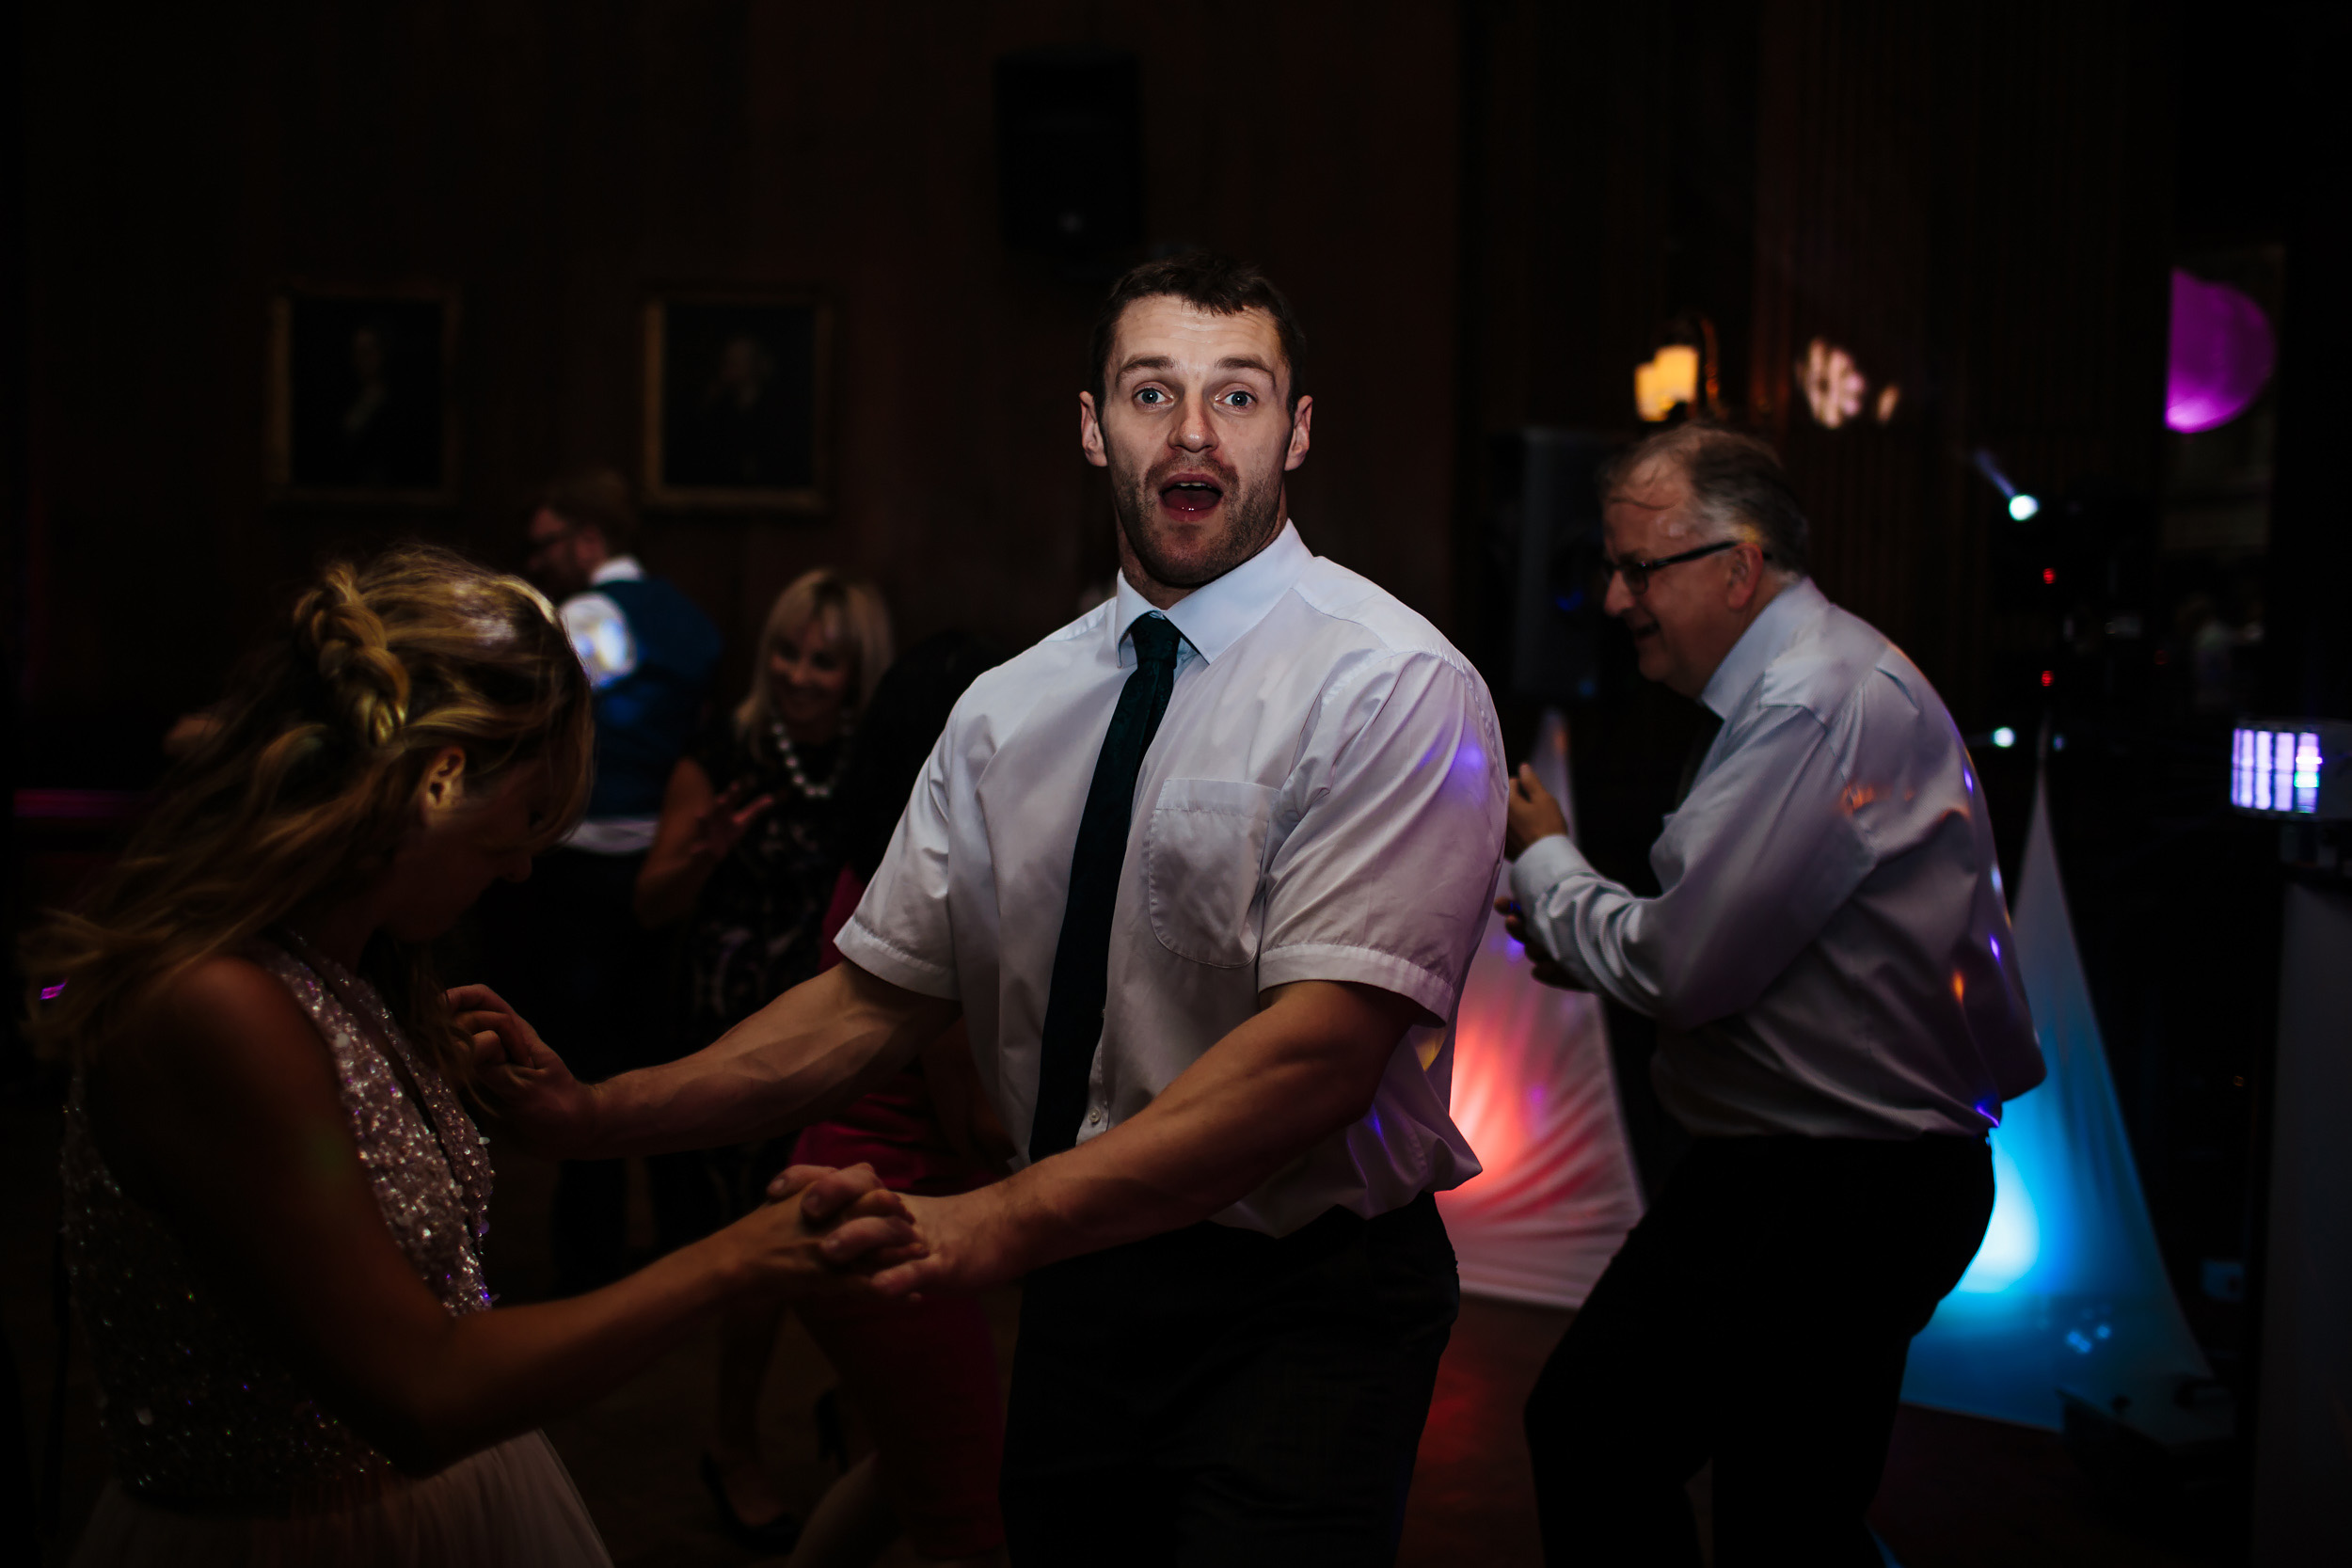 Guests dancing at a wedding disco